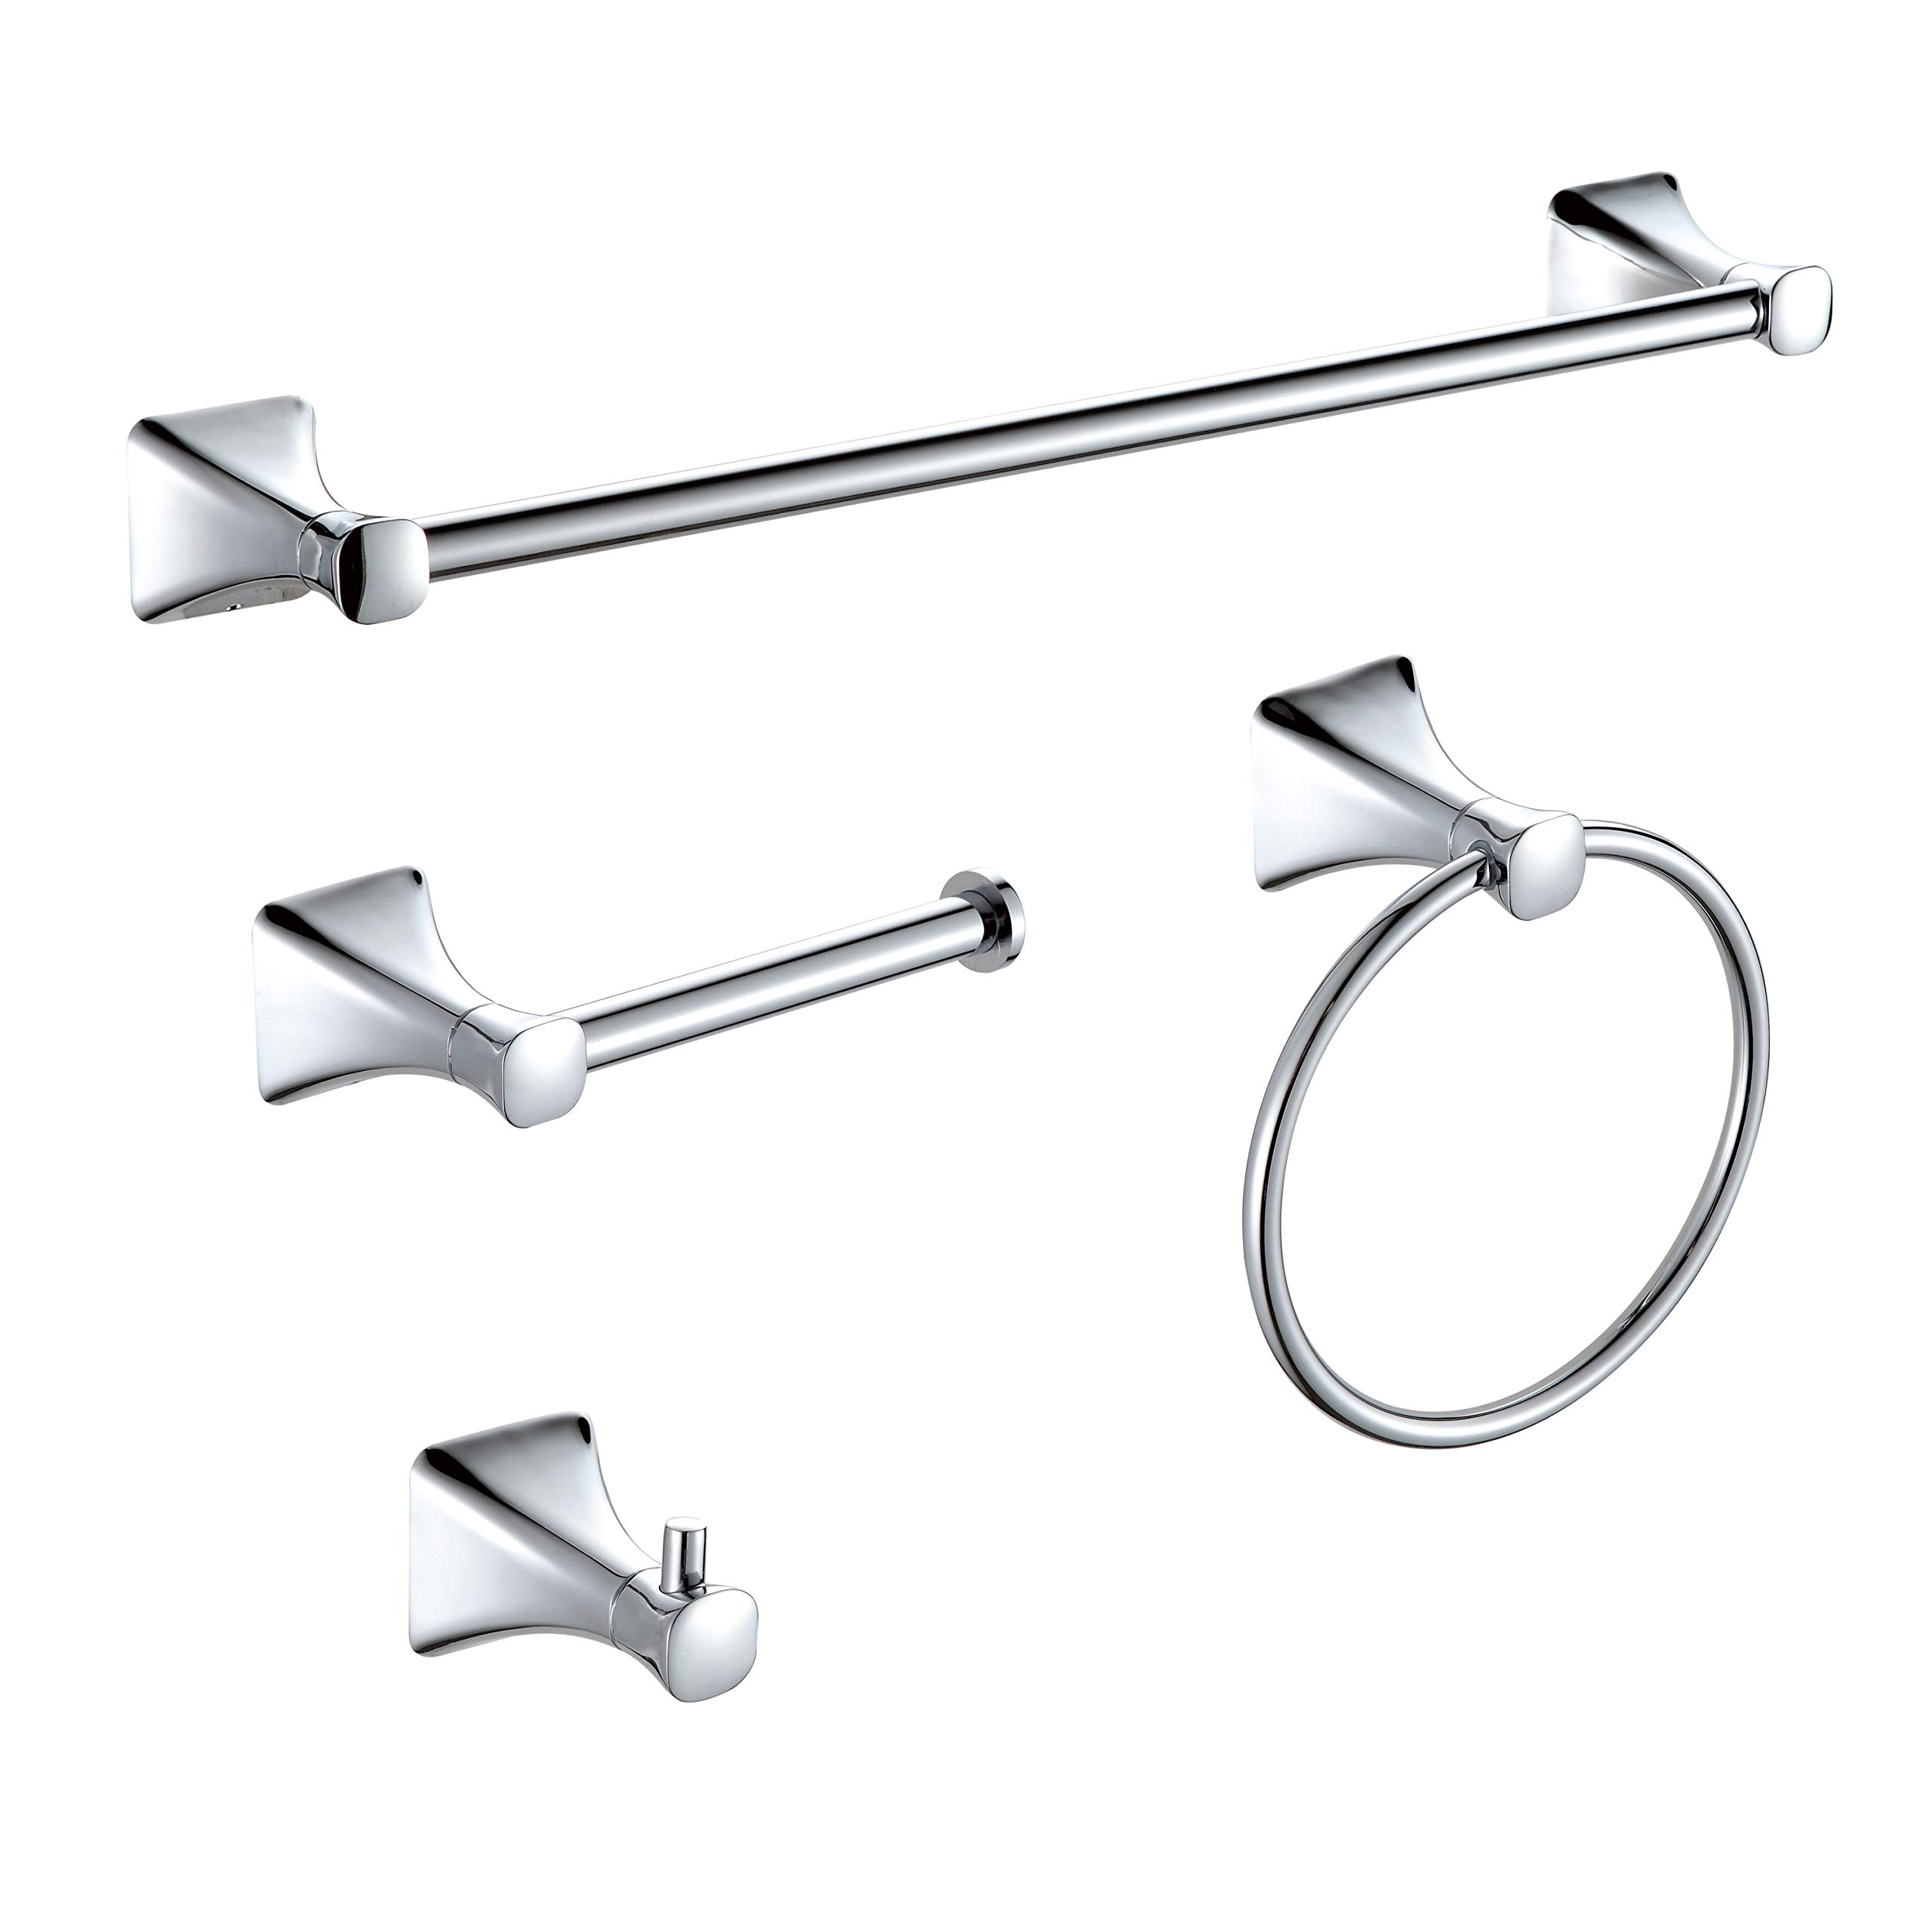 "KAIIY 4-Pieces Chrome Bathroom Hardware Set Round Wall Mounted - Includes 18"" Towel Bar, Toilet Paper Holder, Robe Towel Hooks, Bathroom Accessories Kit"